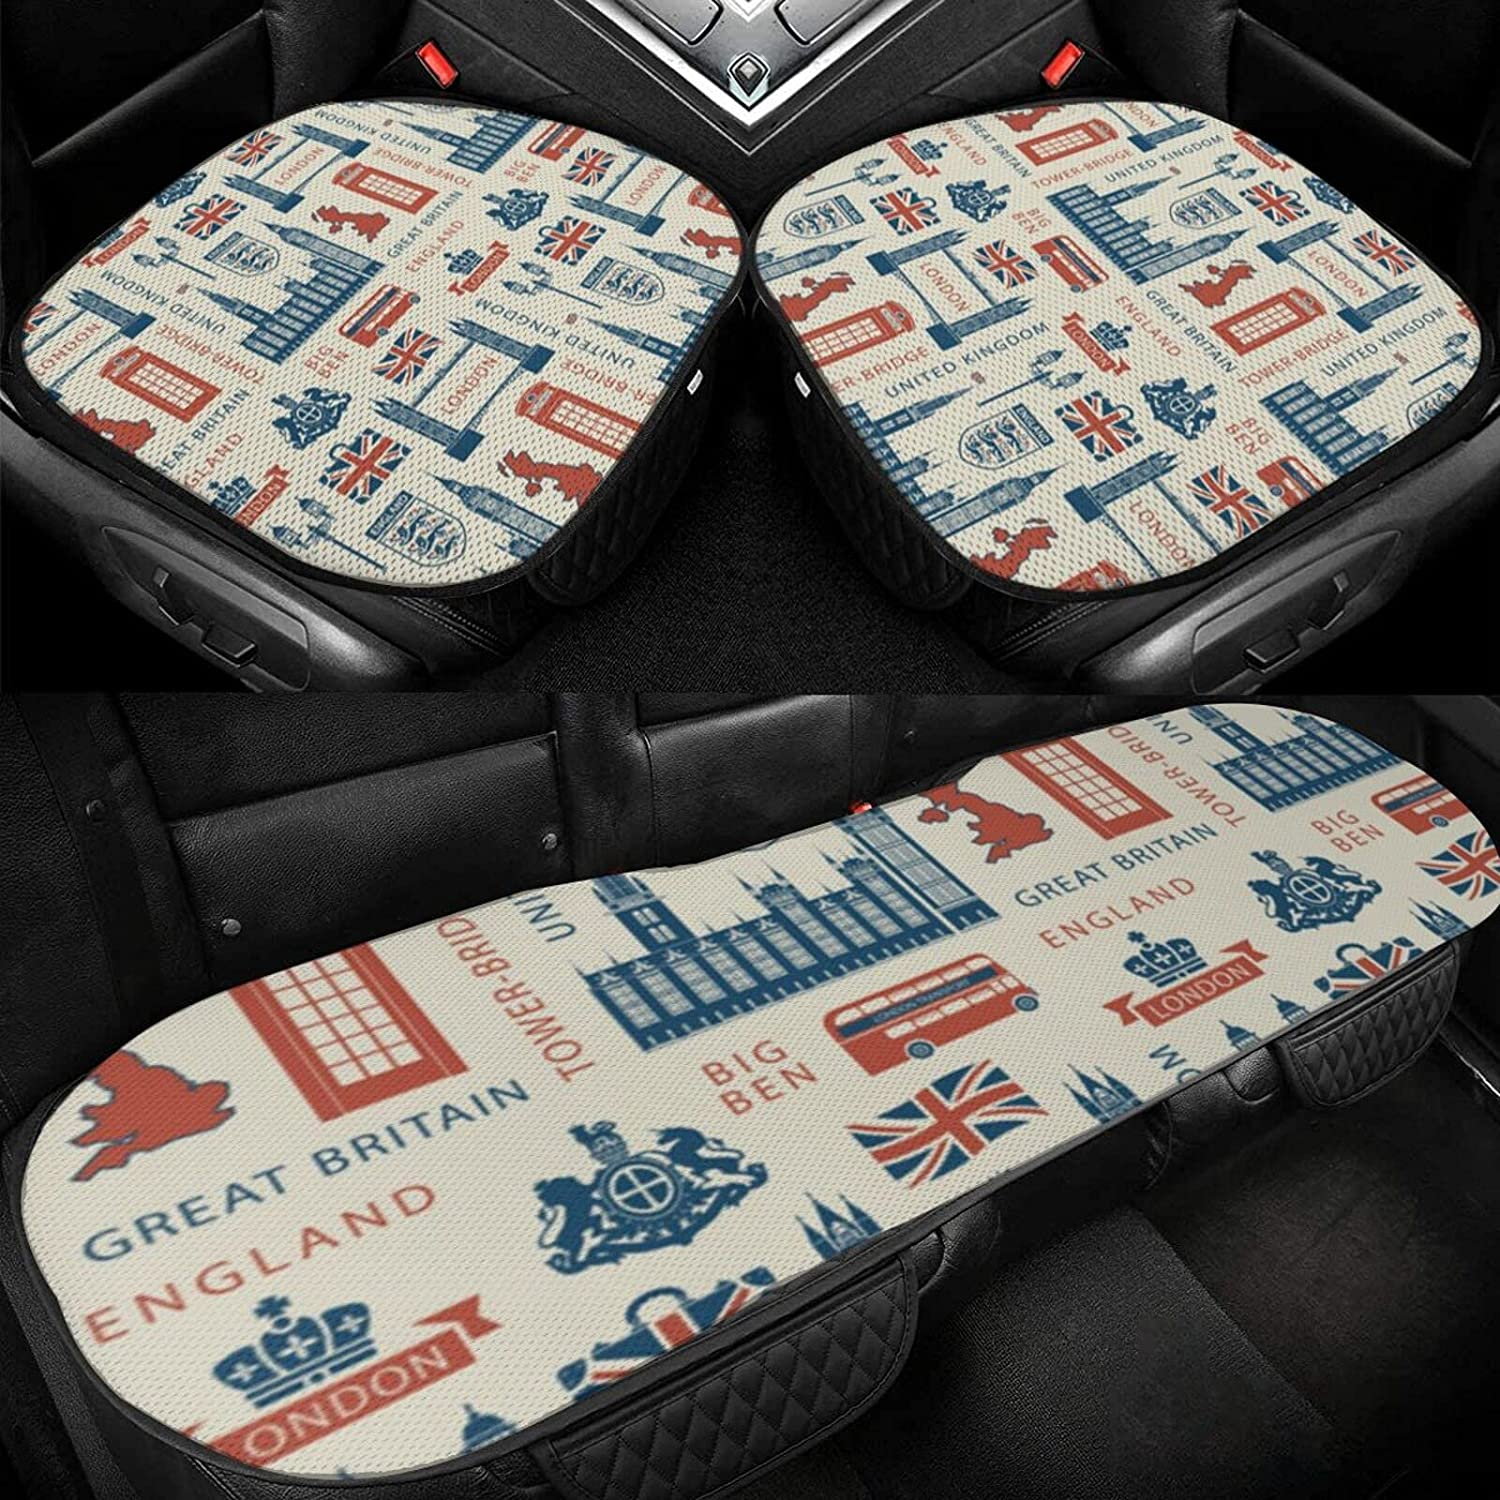 Ice Silk Cushion UK and London f Unisex OFFicial Protective Cover Max 48% OFF Premium